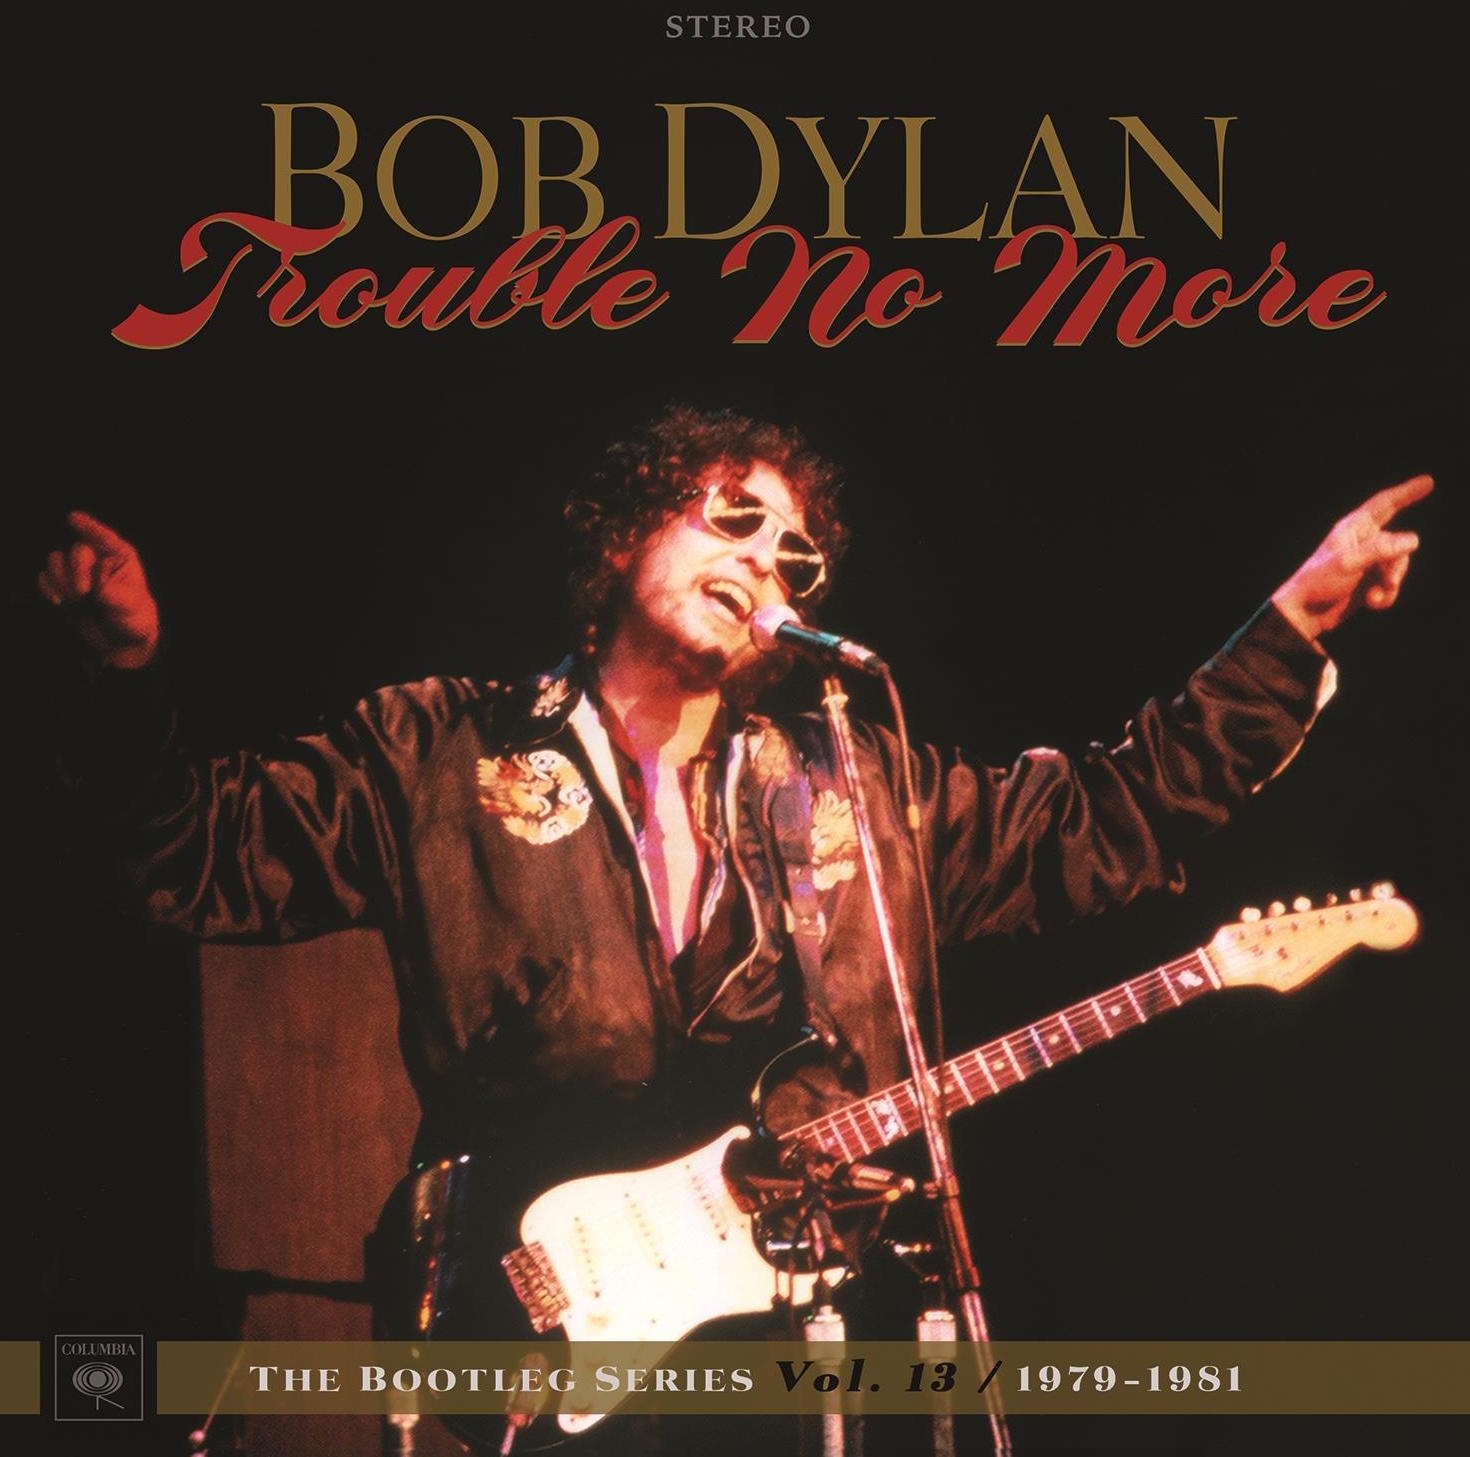 Bob Dylan: Trouble No More -The Bootleg Series Vol. 13 / 1979-1981